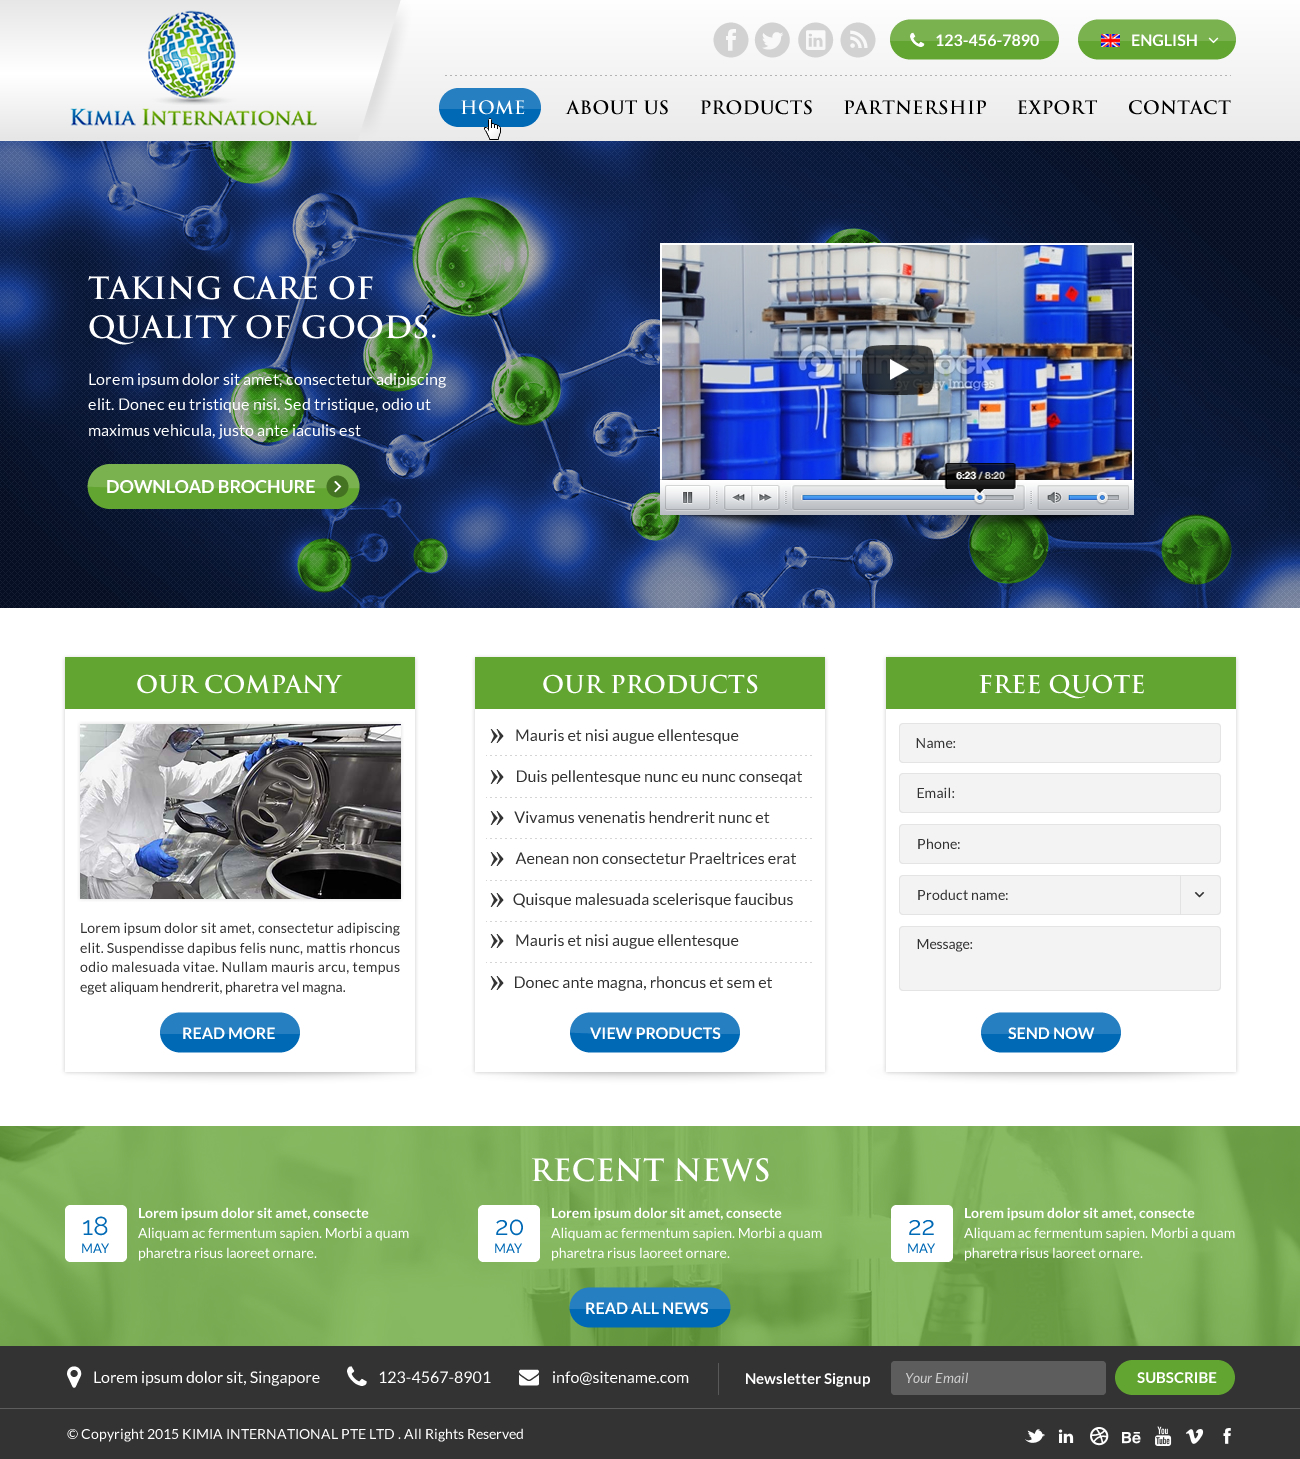 Web Design for a Chemical Trading Company - Trade